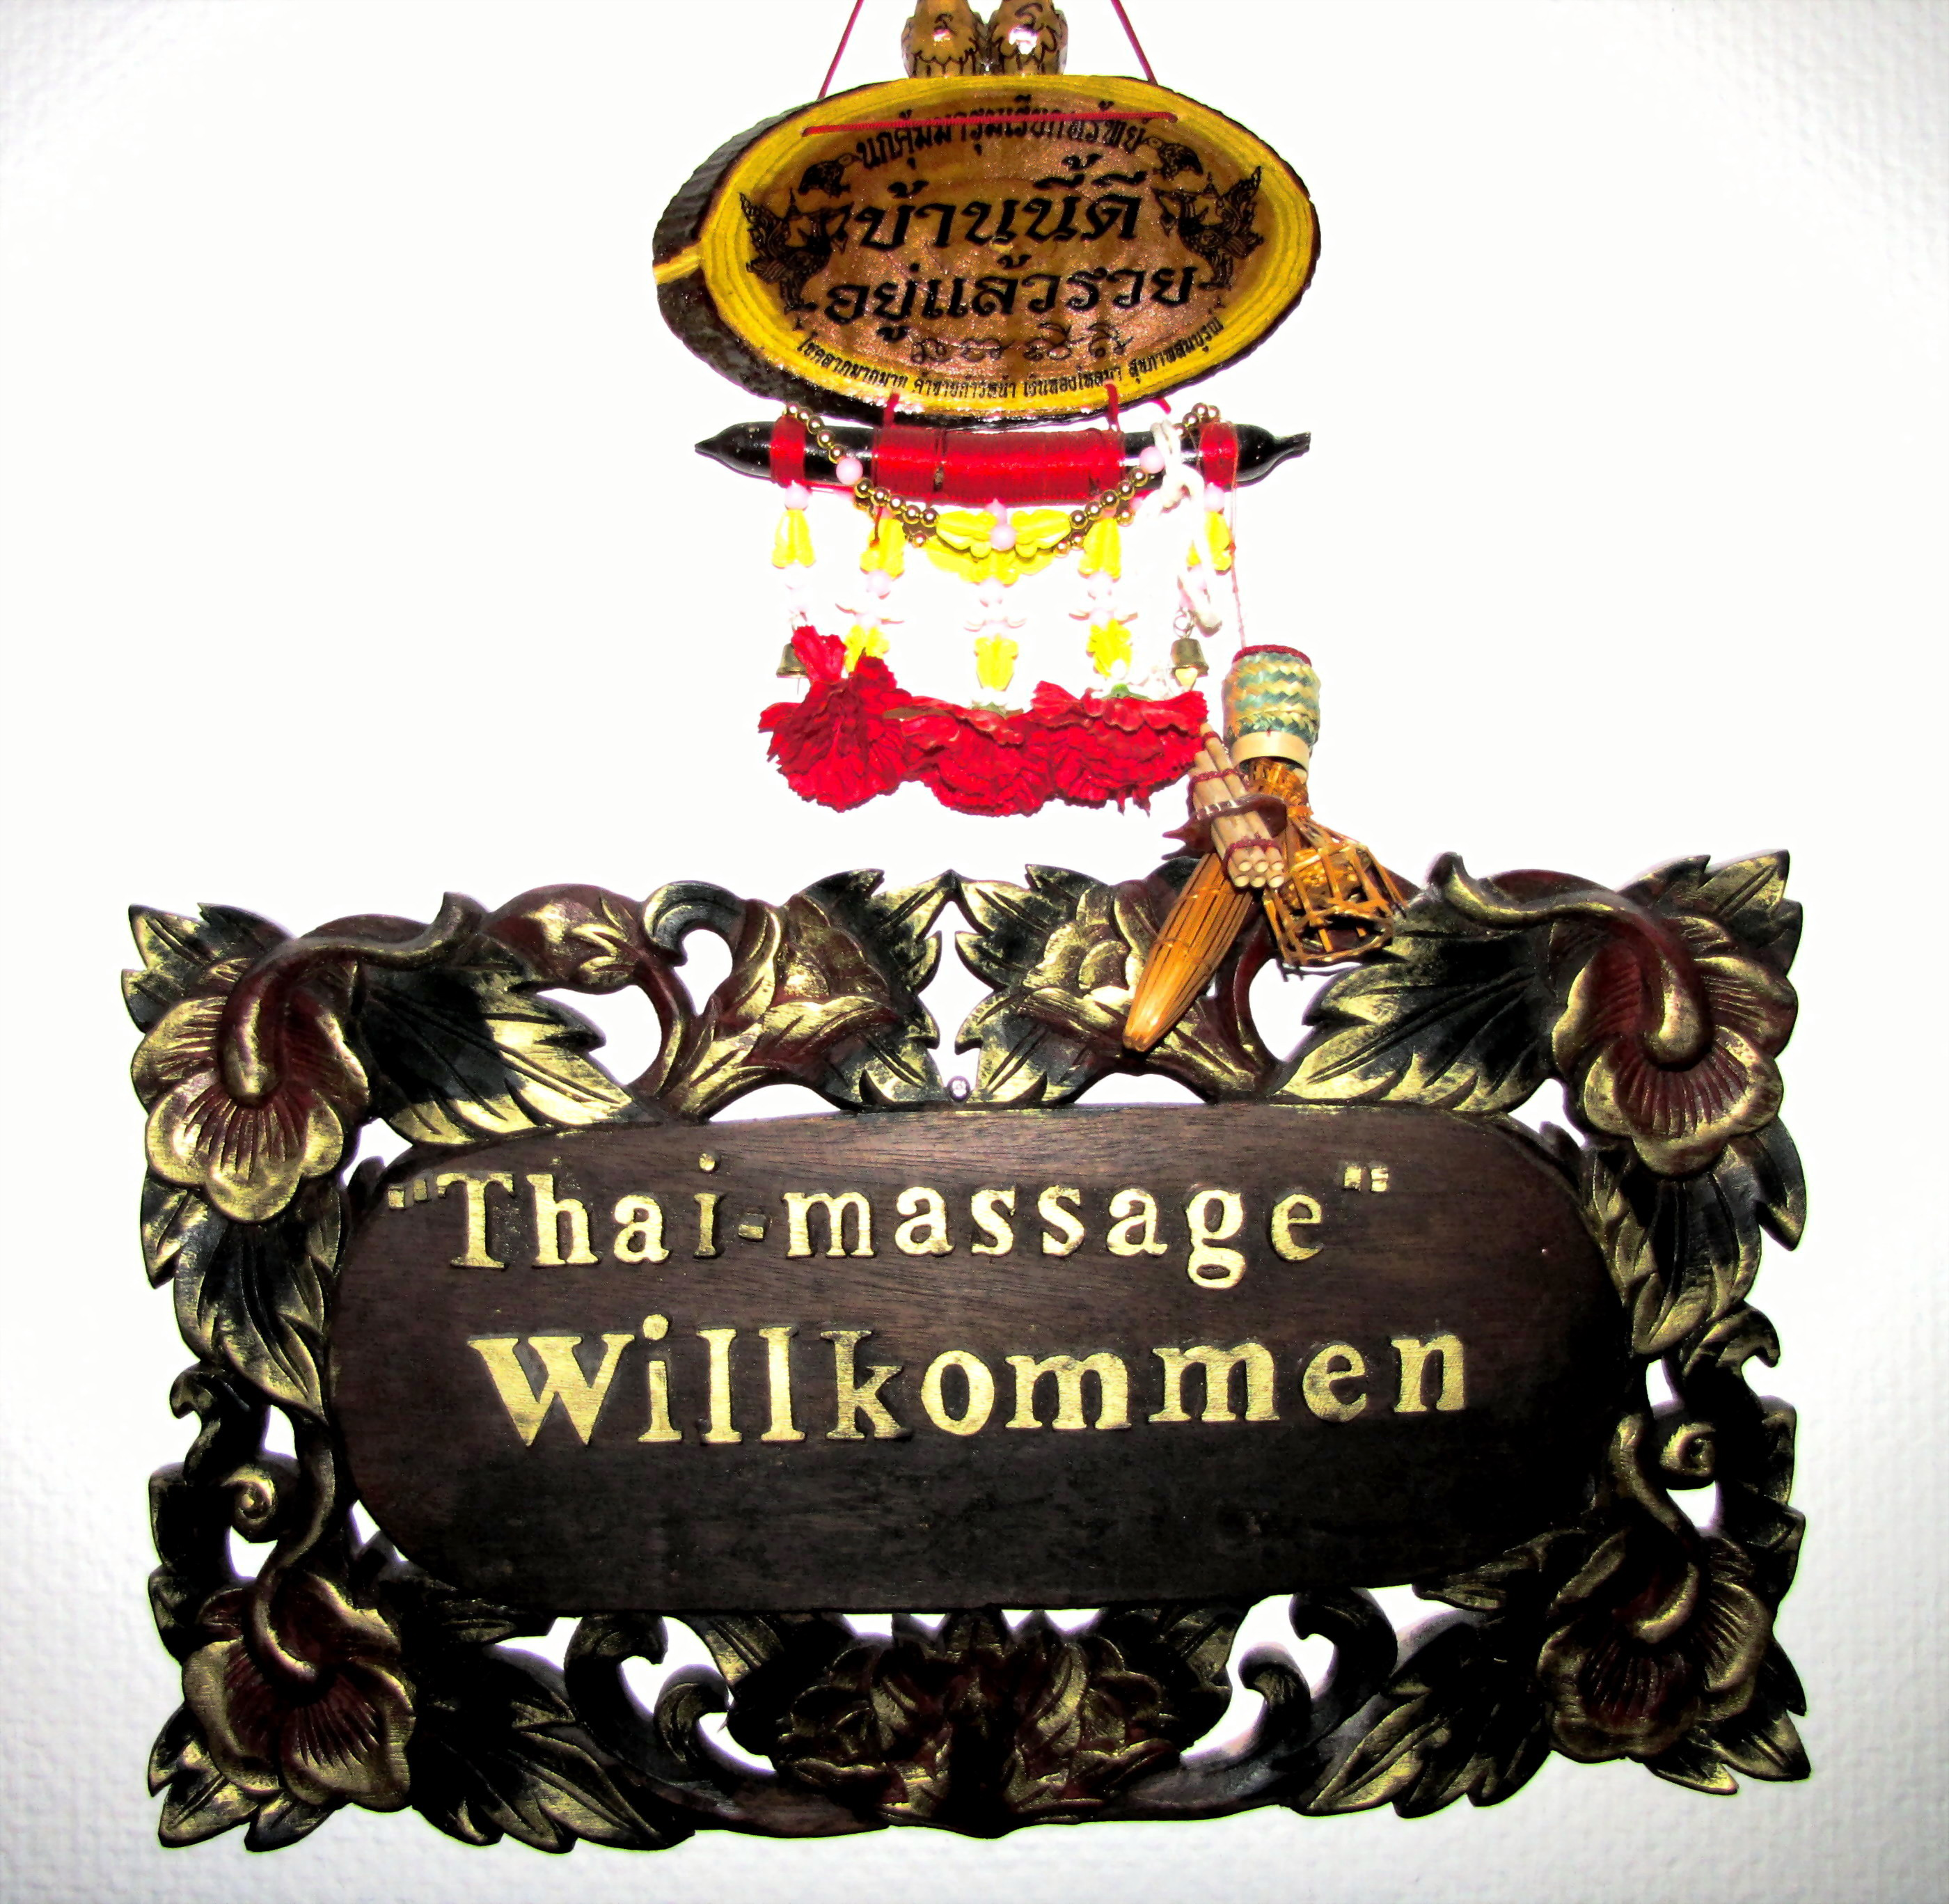 fri por sex massage göteborg